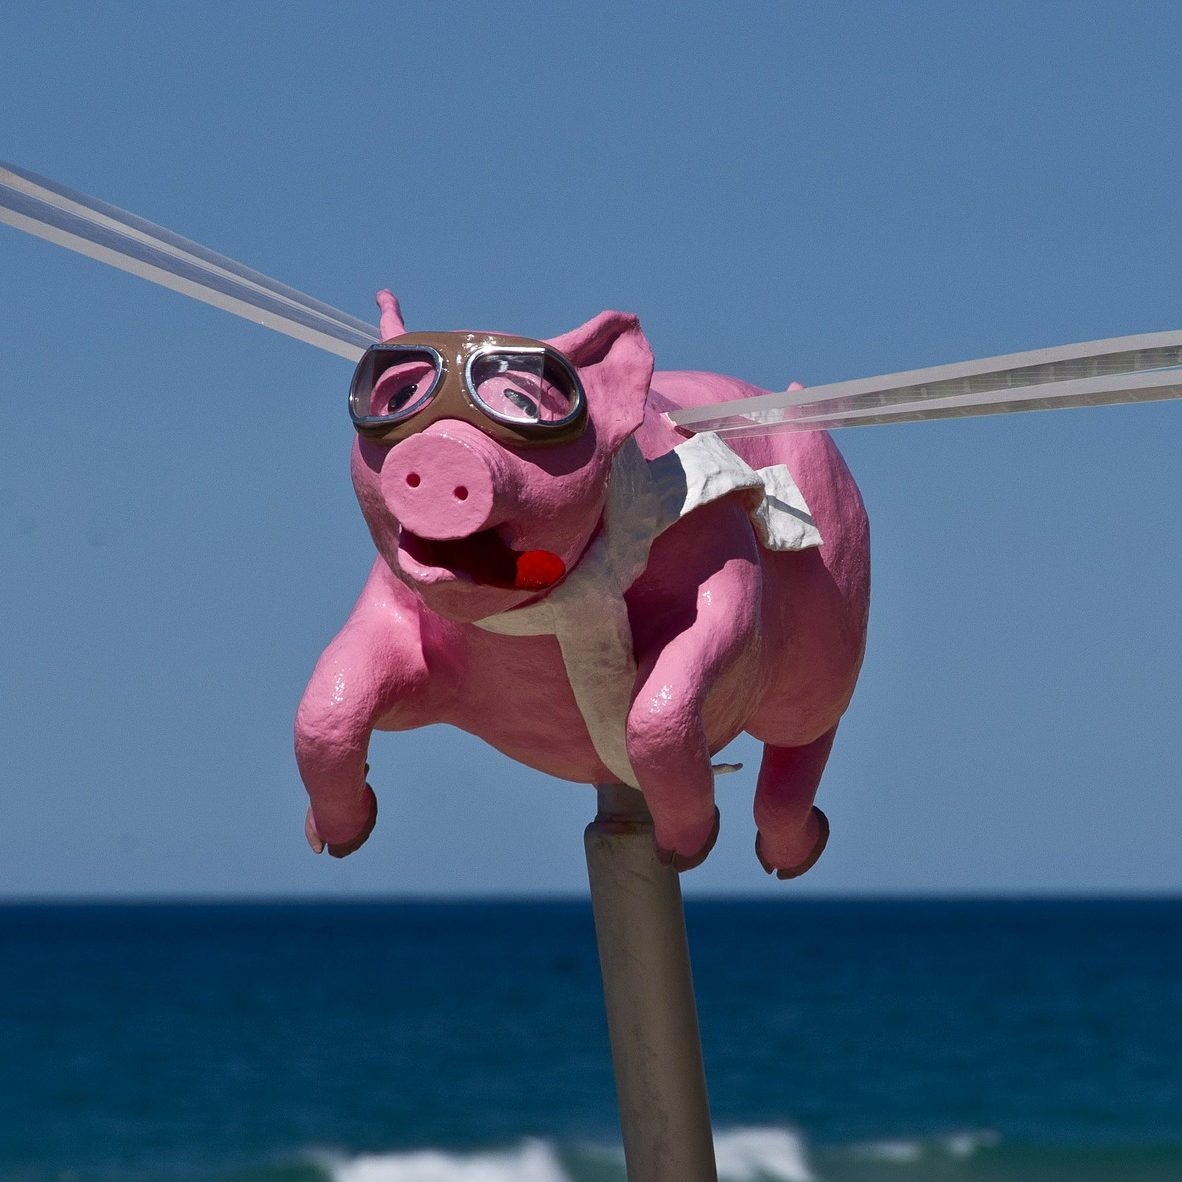 poorly executed flying pig